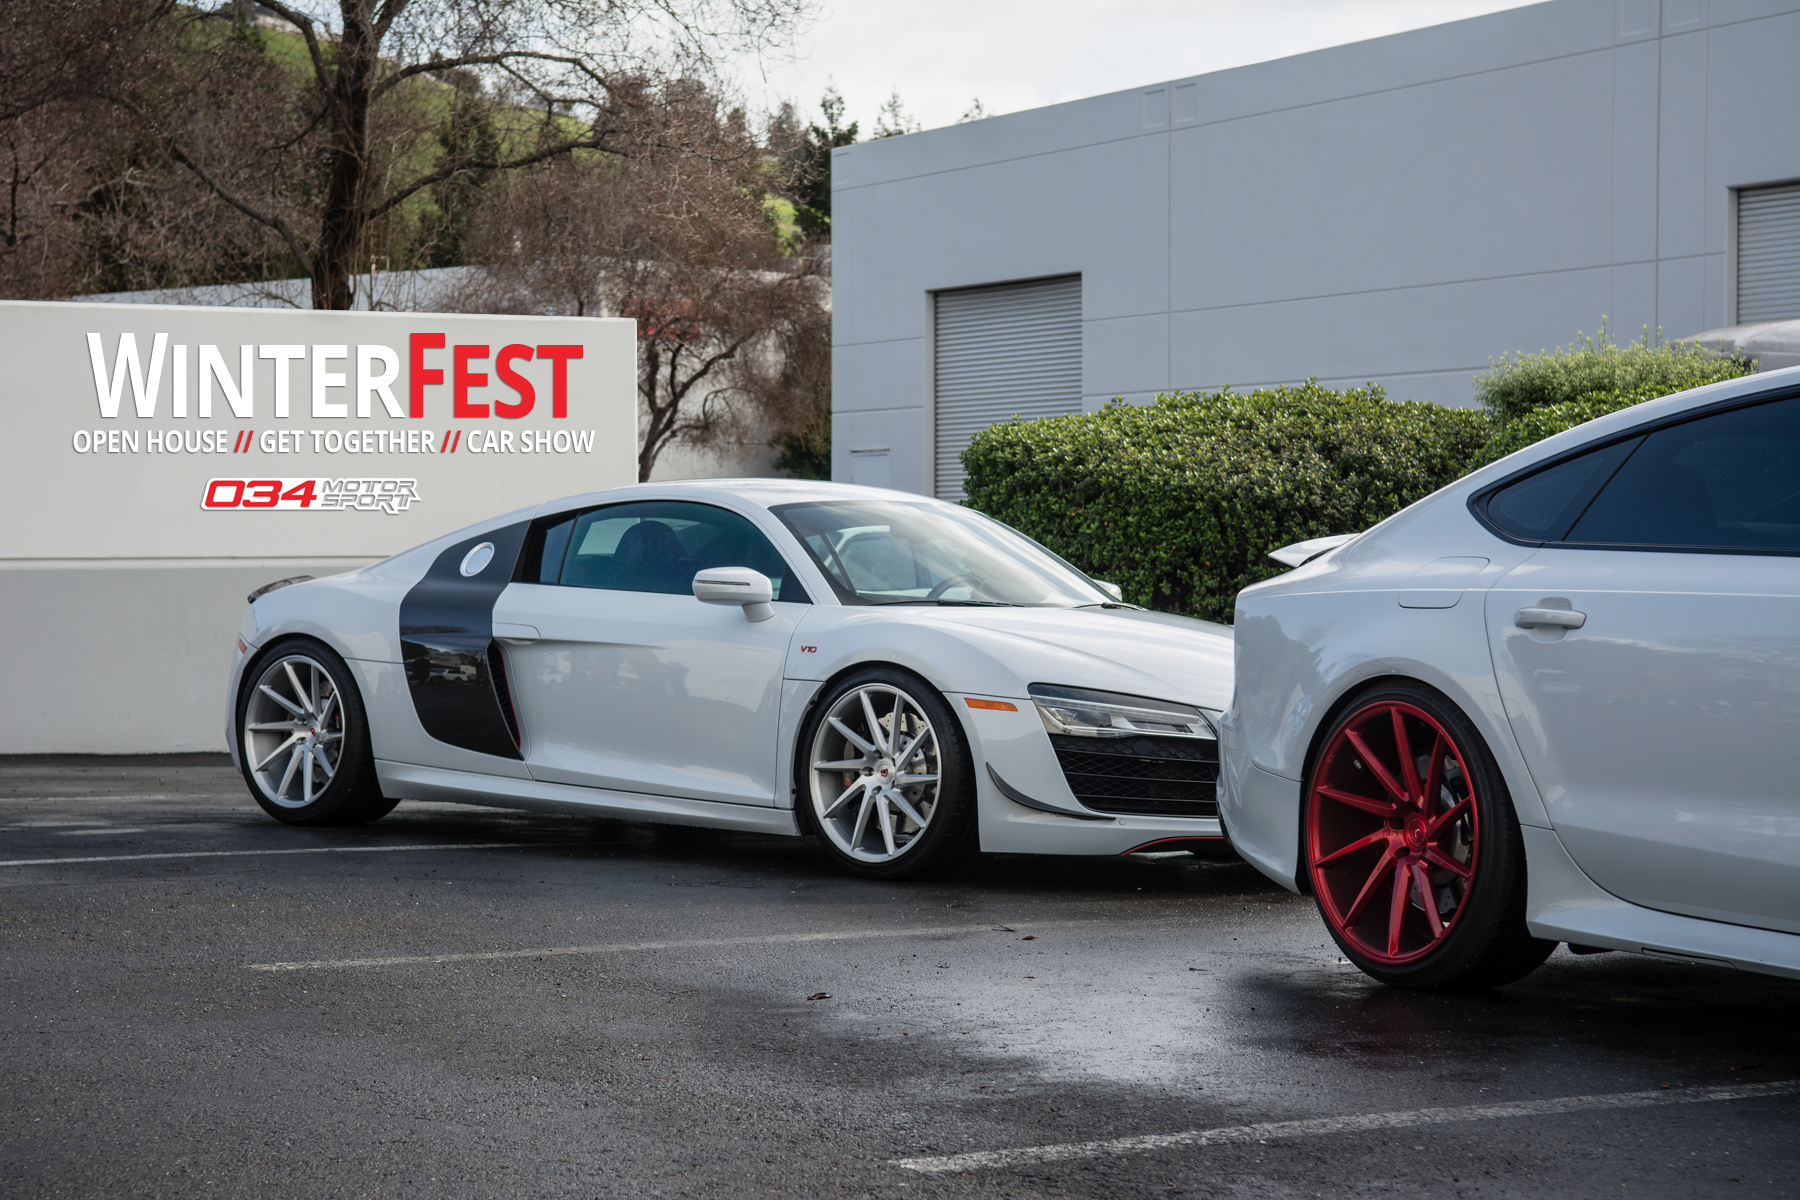 WinterFest 2018 NorCal Bay Area Audi Volkswagen Get Together Car Show